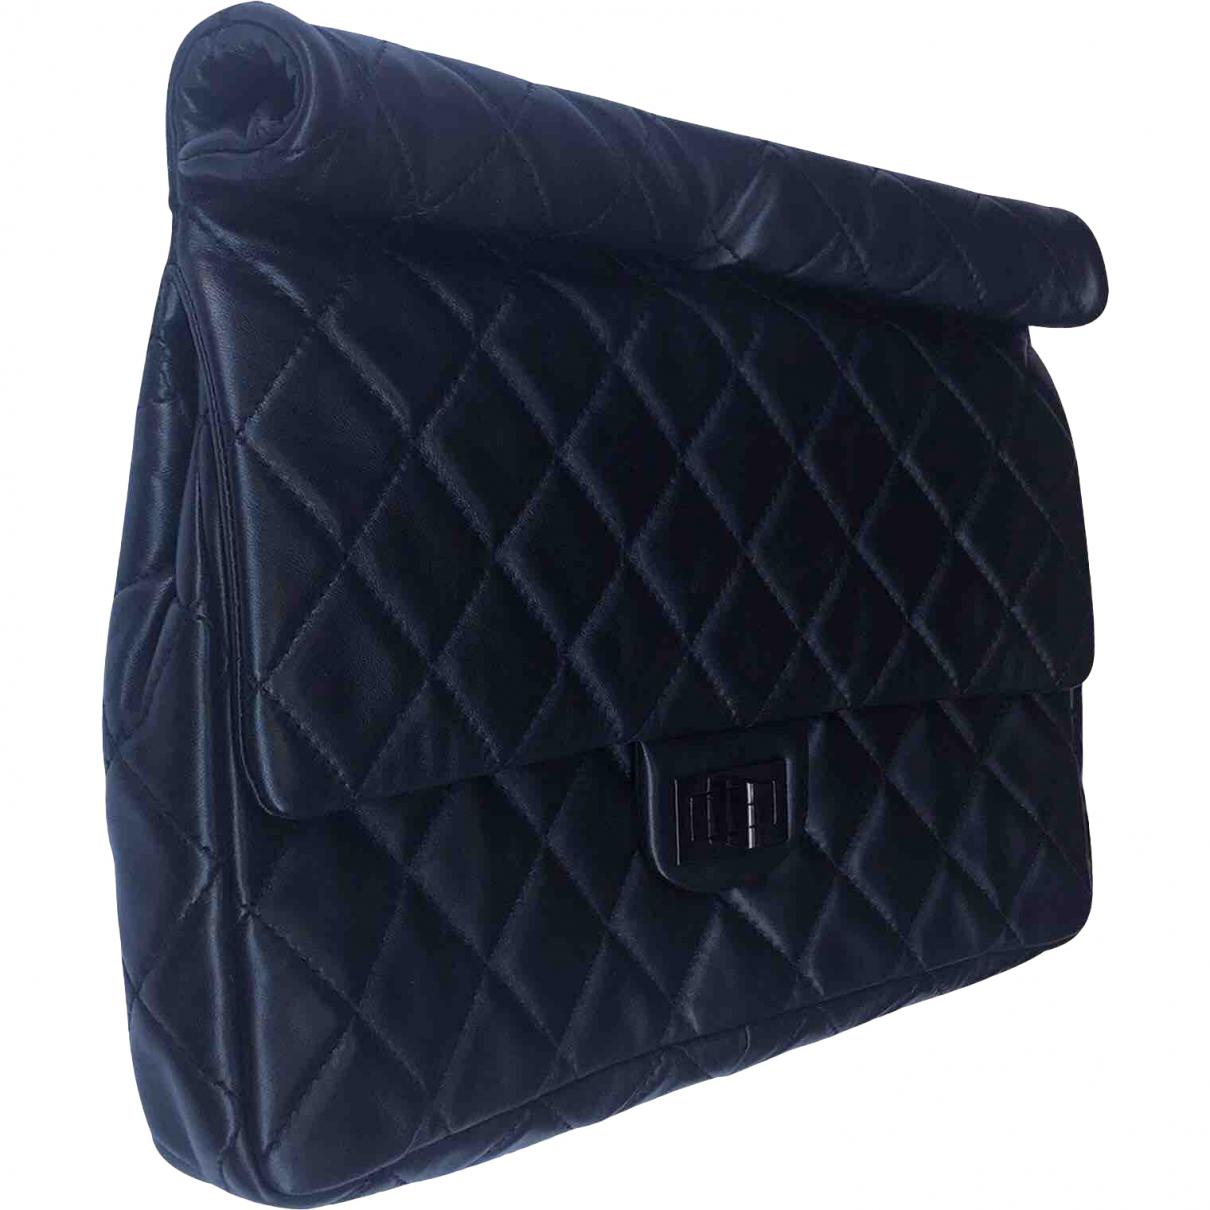 a638909d1d2e Chanel Pre-owned 2.55 Leather Clutch Bag in Black - Lyst